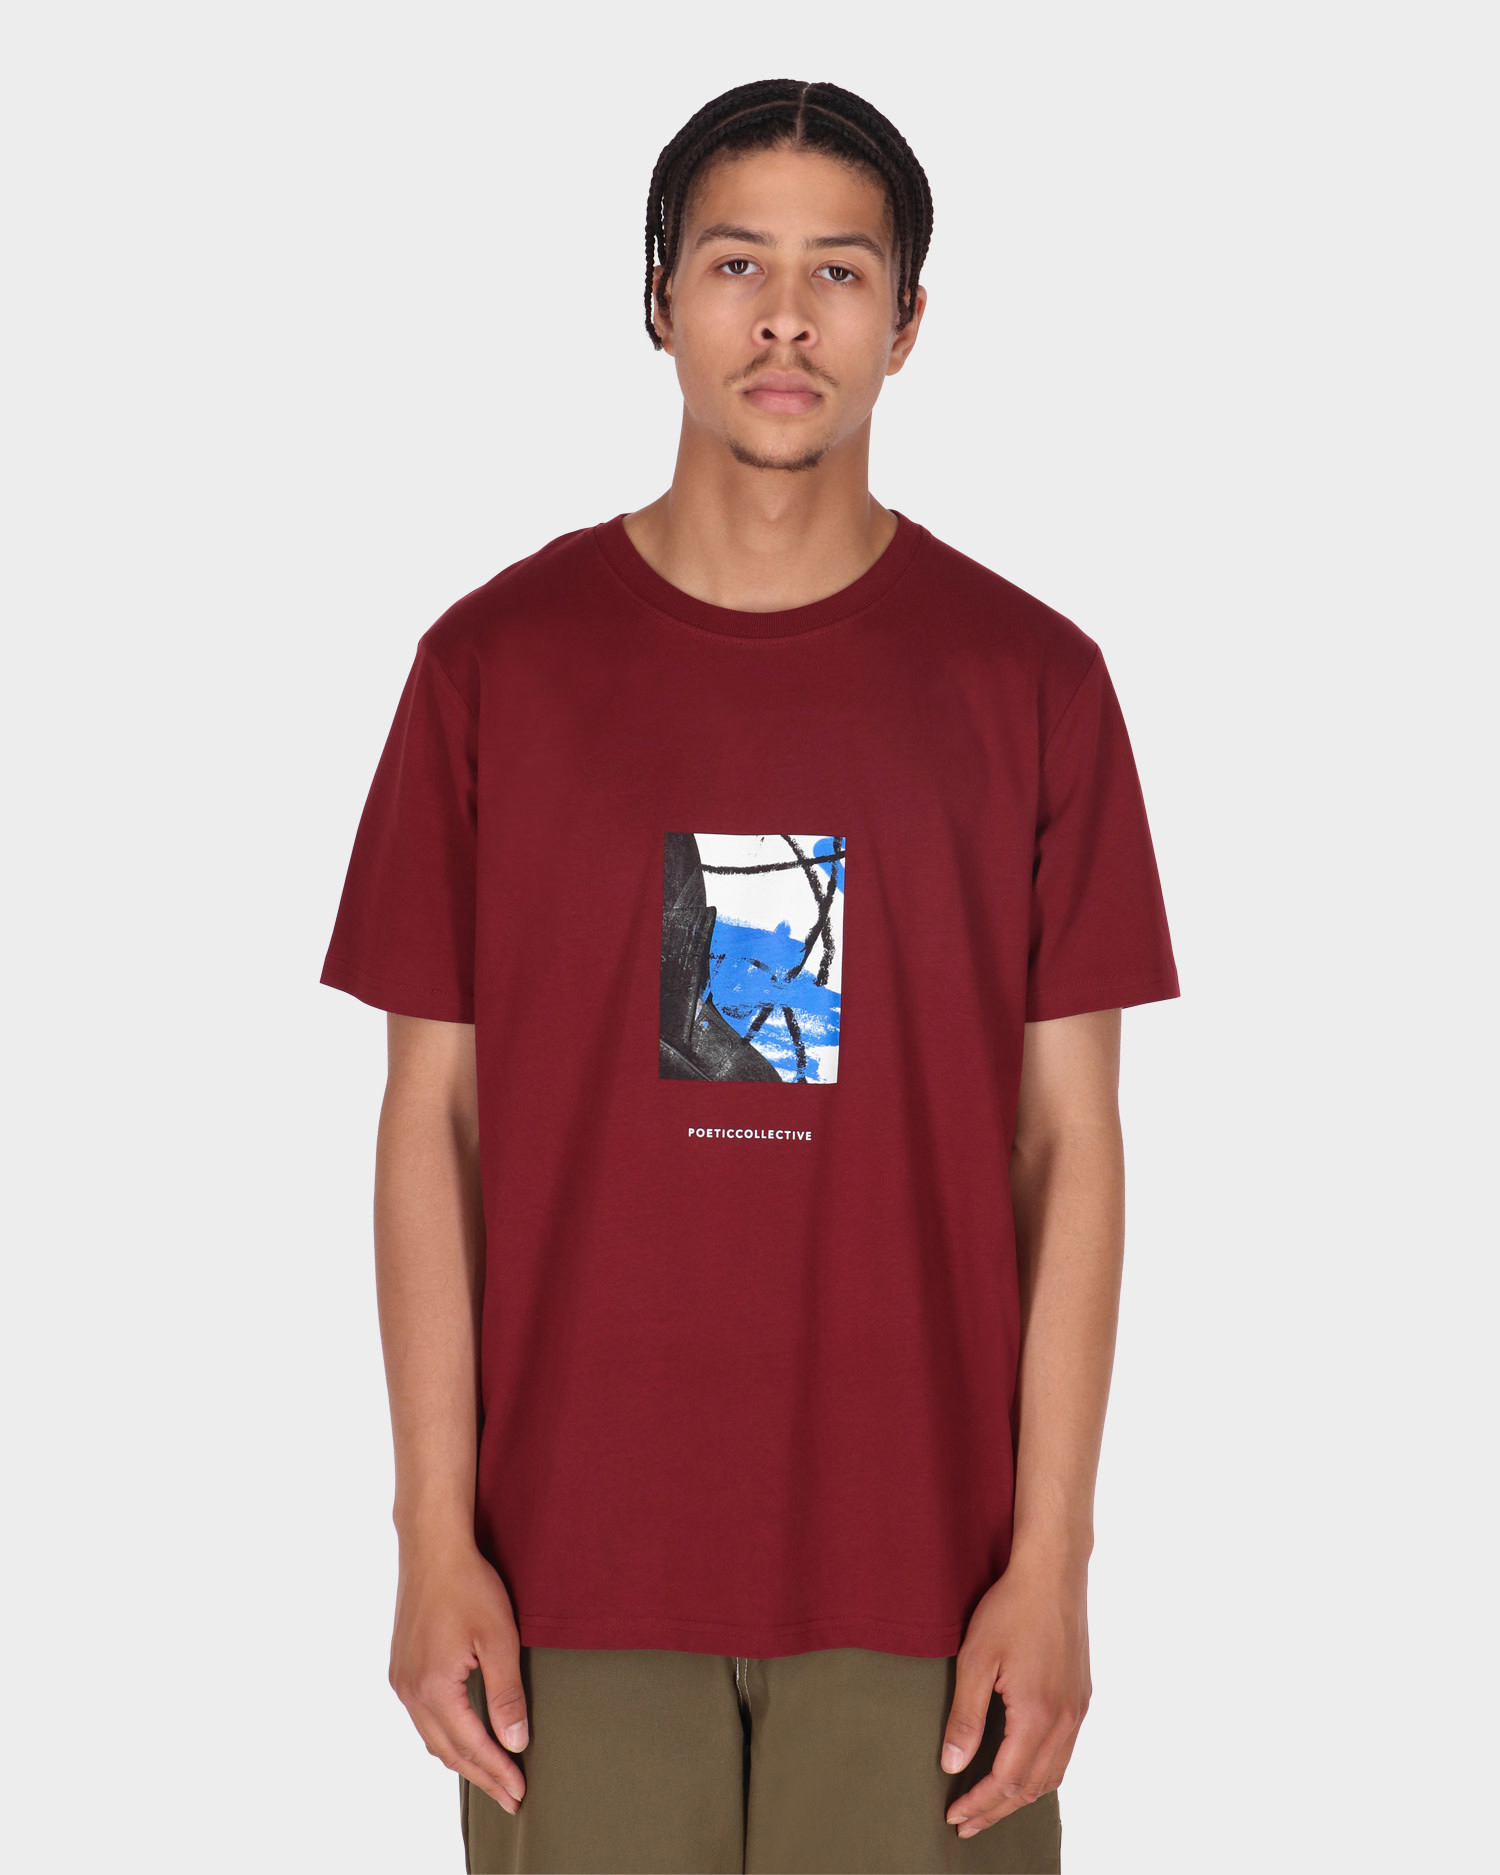 Poetic Collective Painting T-shirt Burgundy